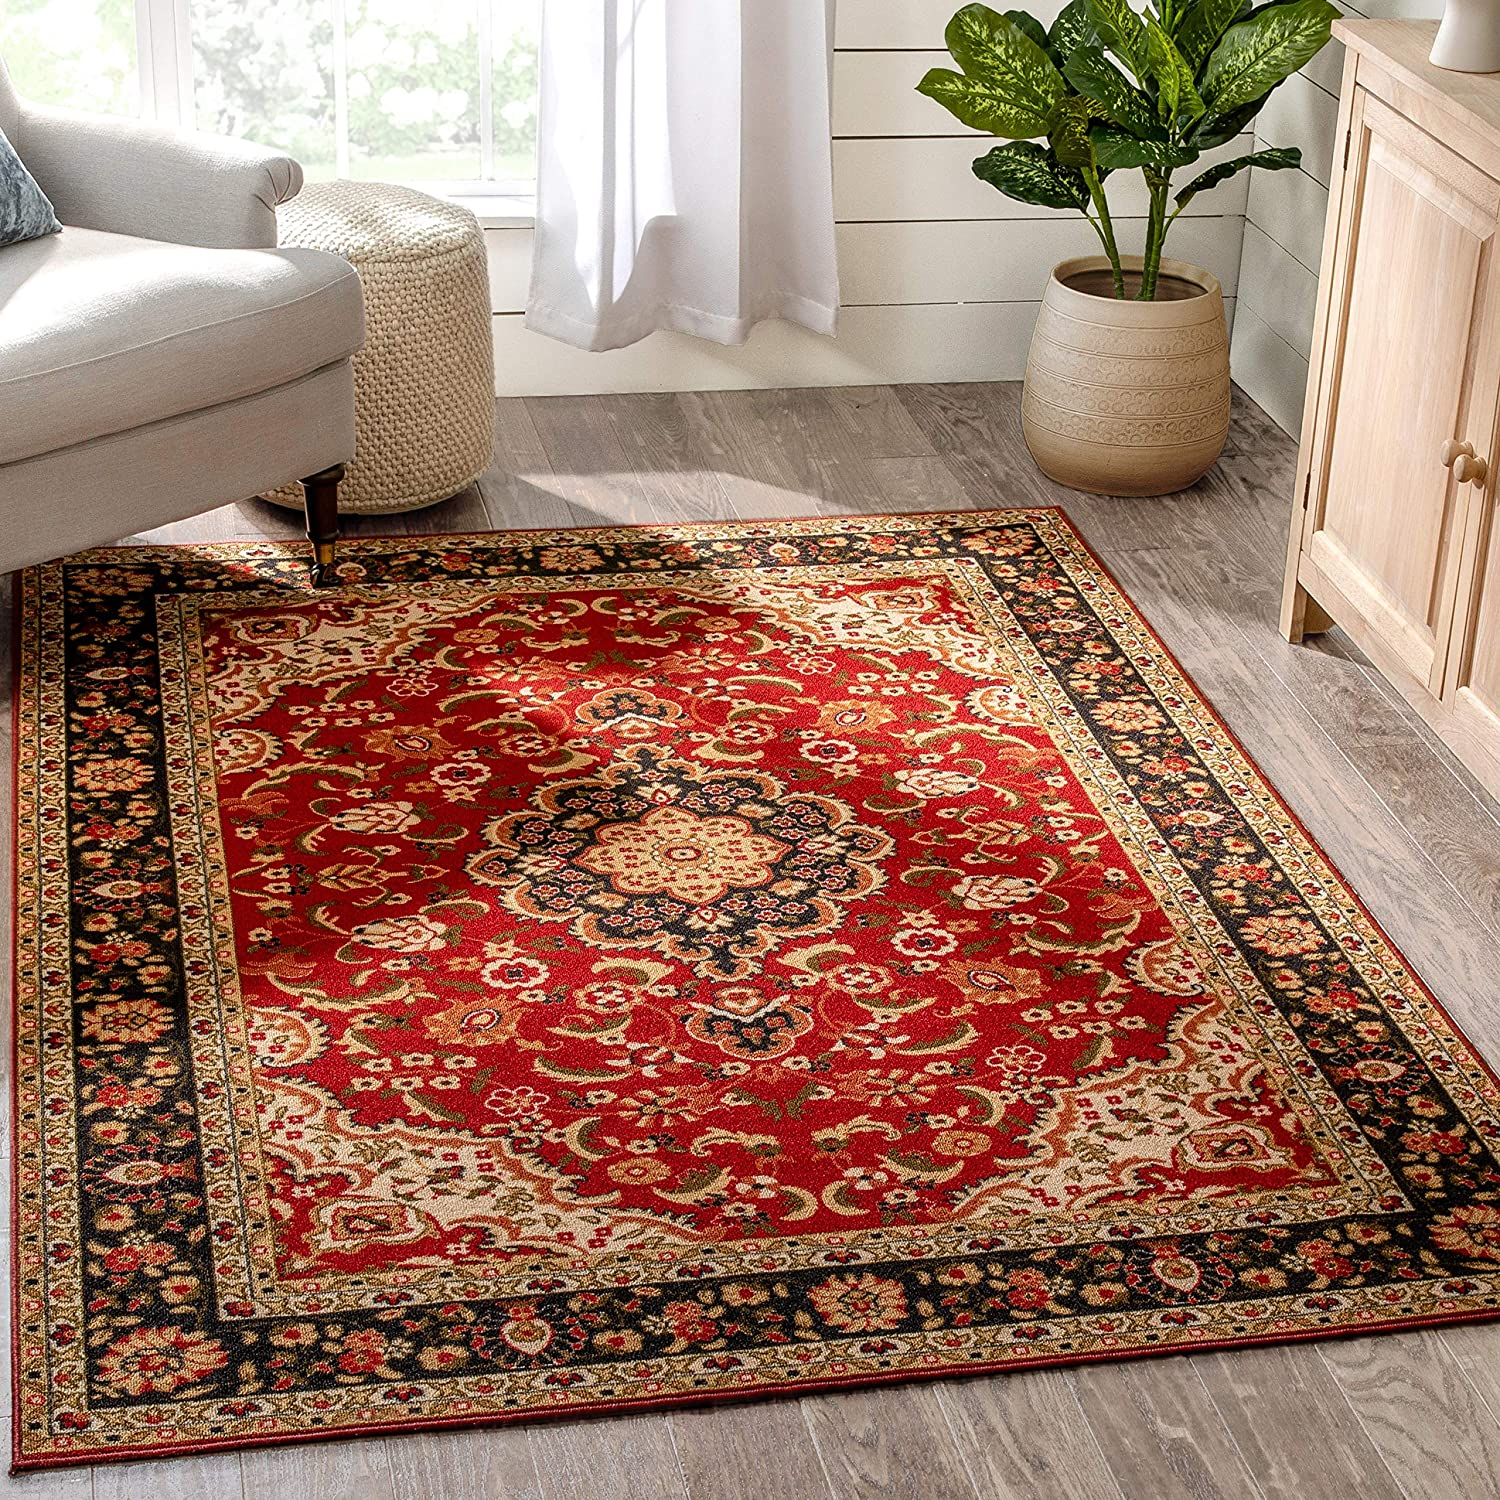 Well Woven Eugene Red Oriental Rug 5x7 Non-Slip Direct stock discount Popular Medallion Area